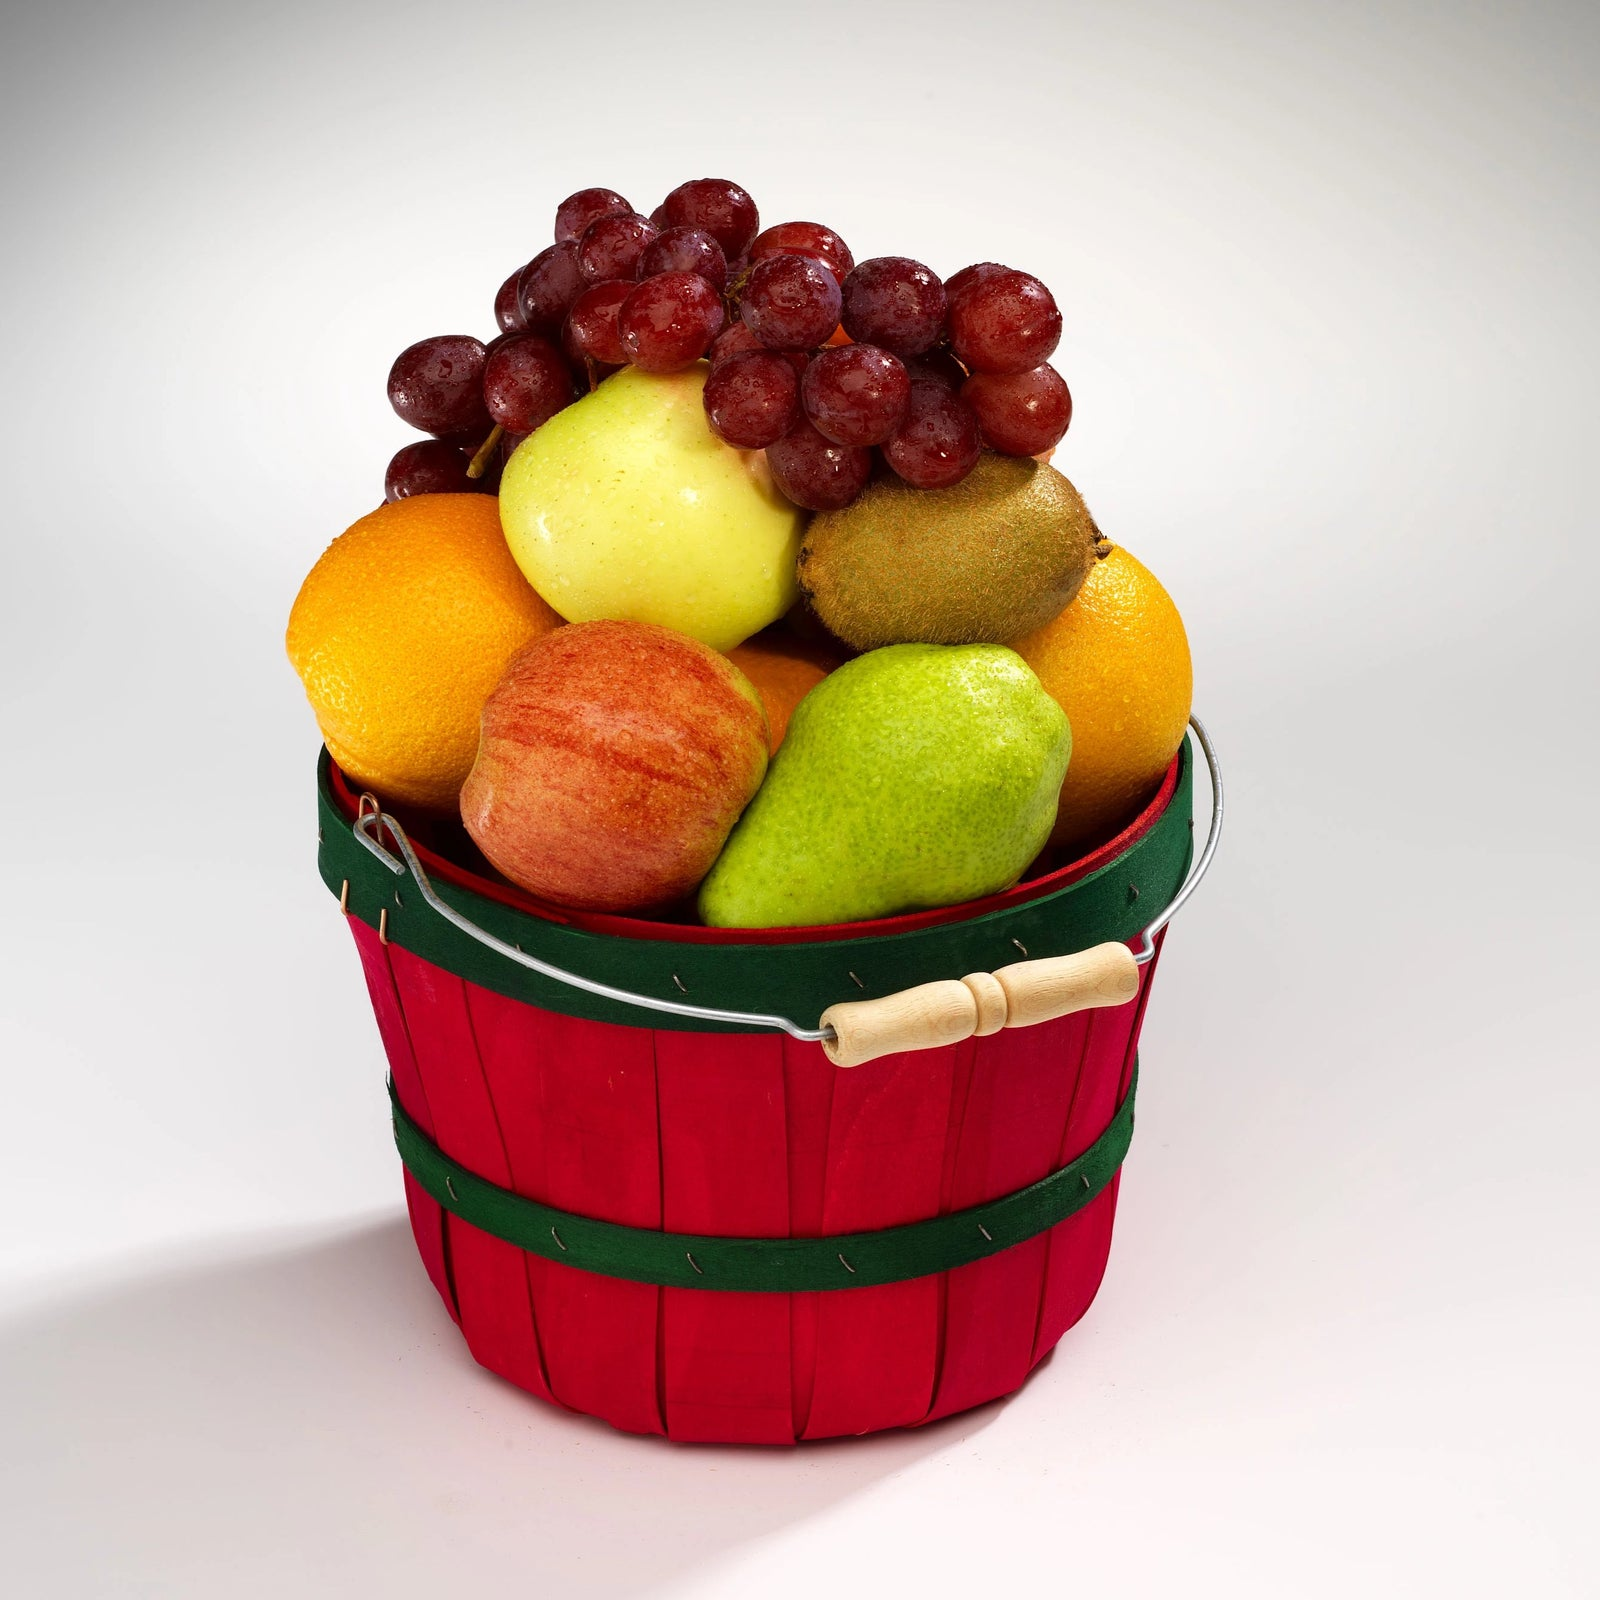 M. Whole Flavor Fruit Basket - Brennans Market